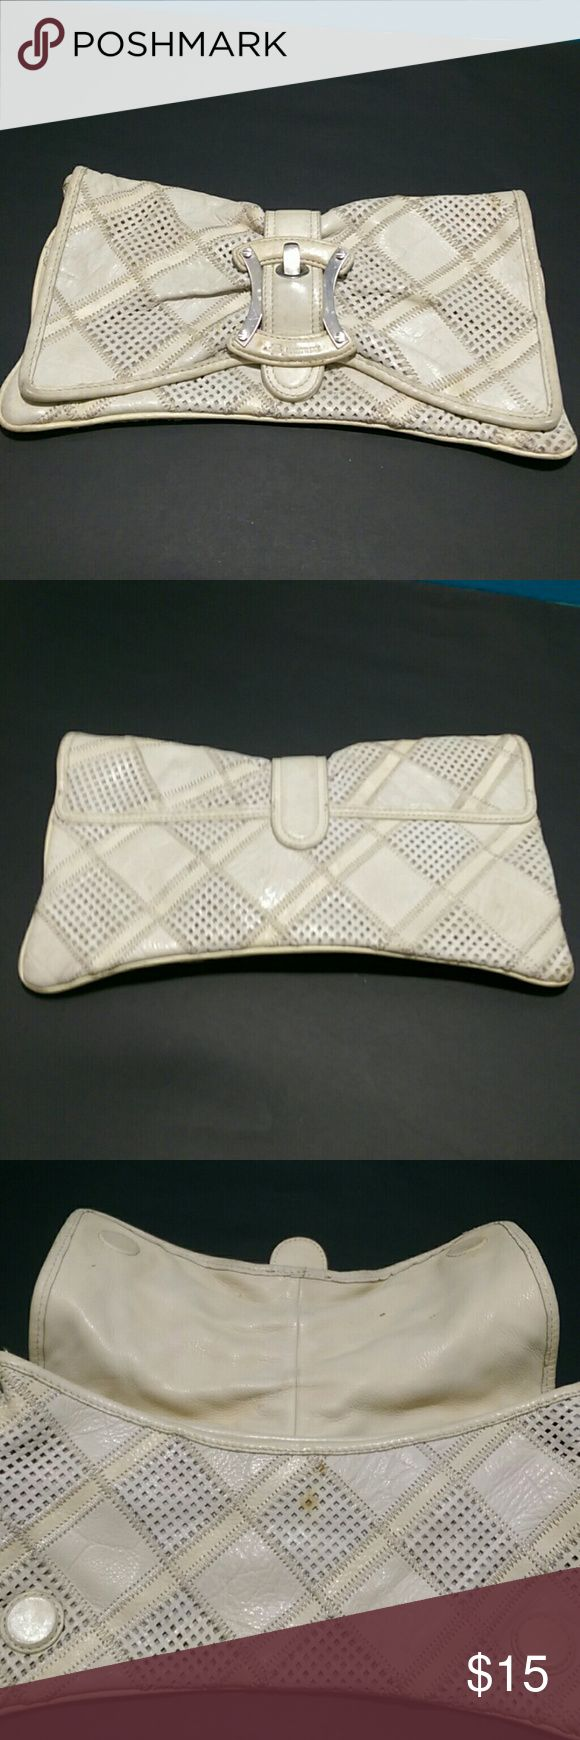 Selling this B Makowsky Leather Clutch on Poshmark! My username is: ednaryan. #shopmycloset #poshmark #fashion #shopping #style #forsale #B Makowsky #Handbags